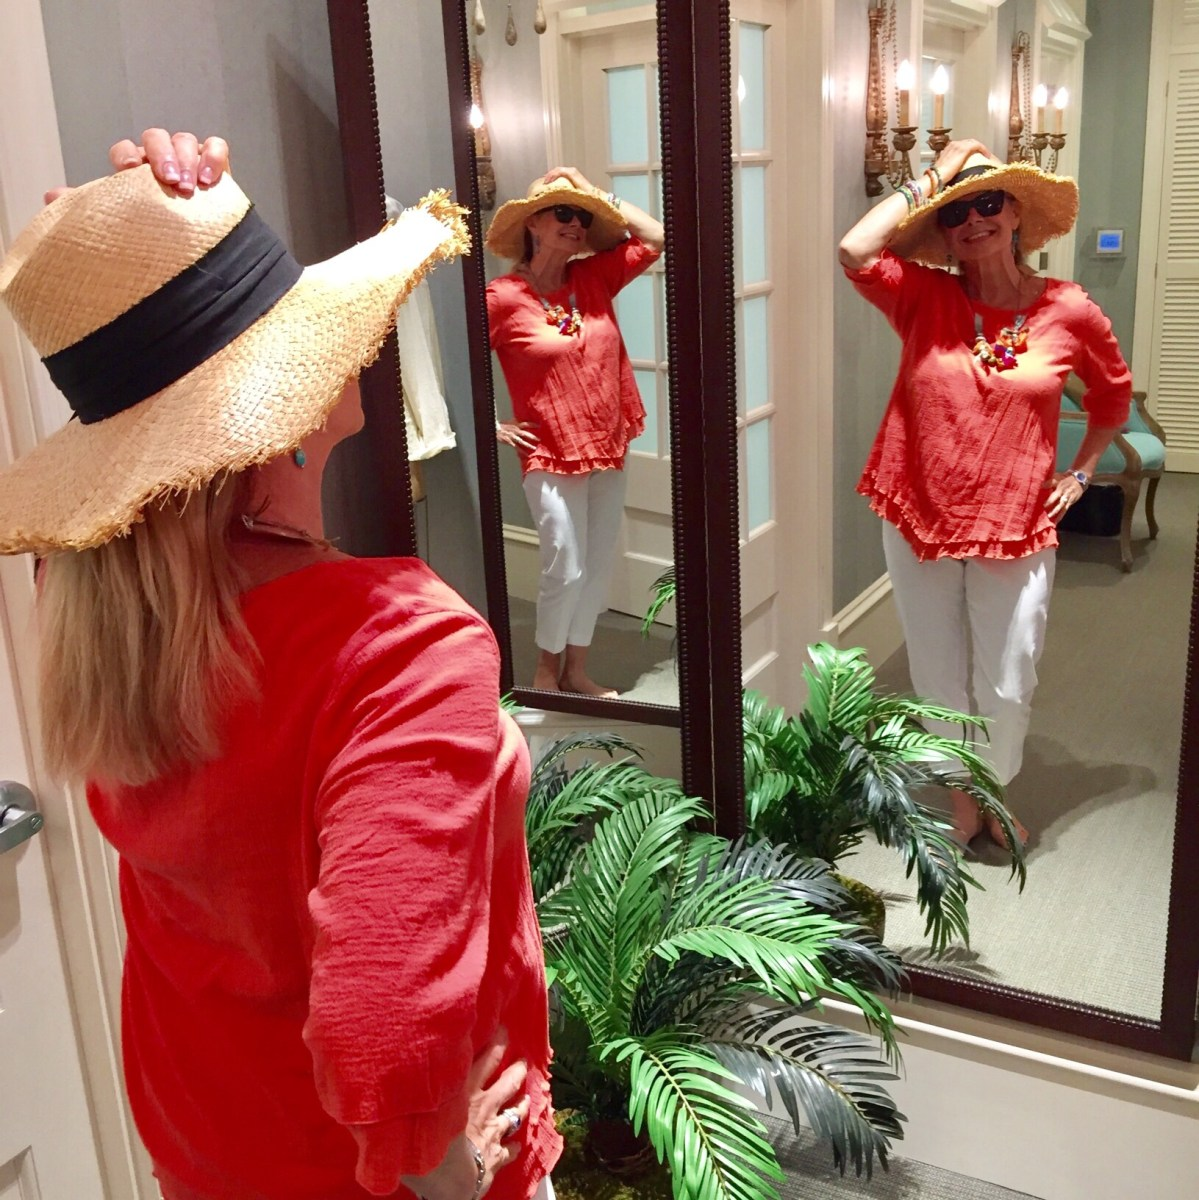 Fashion Over 50: The Beach Bum meets Her Match